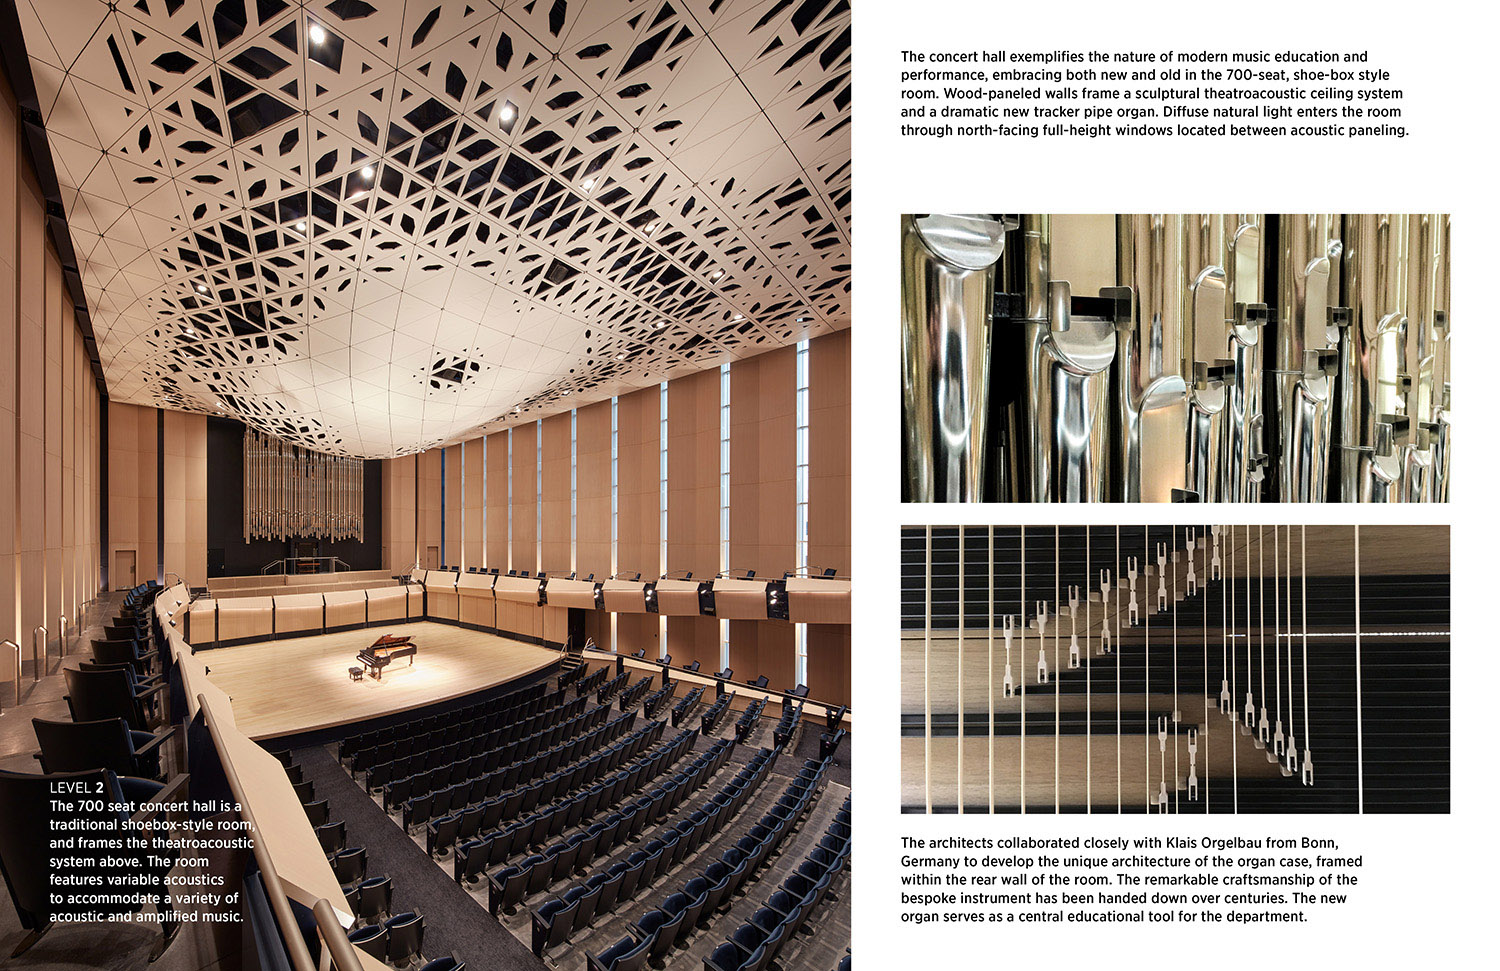 The concert hall exemplifies the nature of modern music education and performance, embracing both new and old in the 700-seat, shoe-box style room Wood-paneled walls frame a sculptural theatroacoustic ceil Tim Griffith}